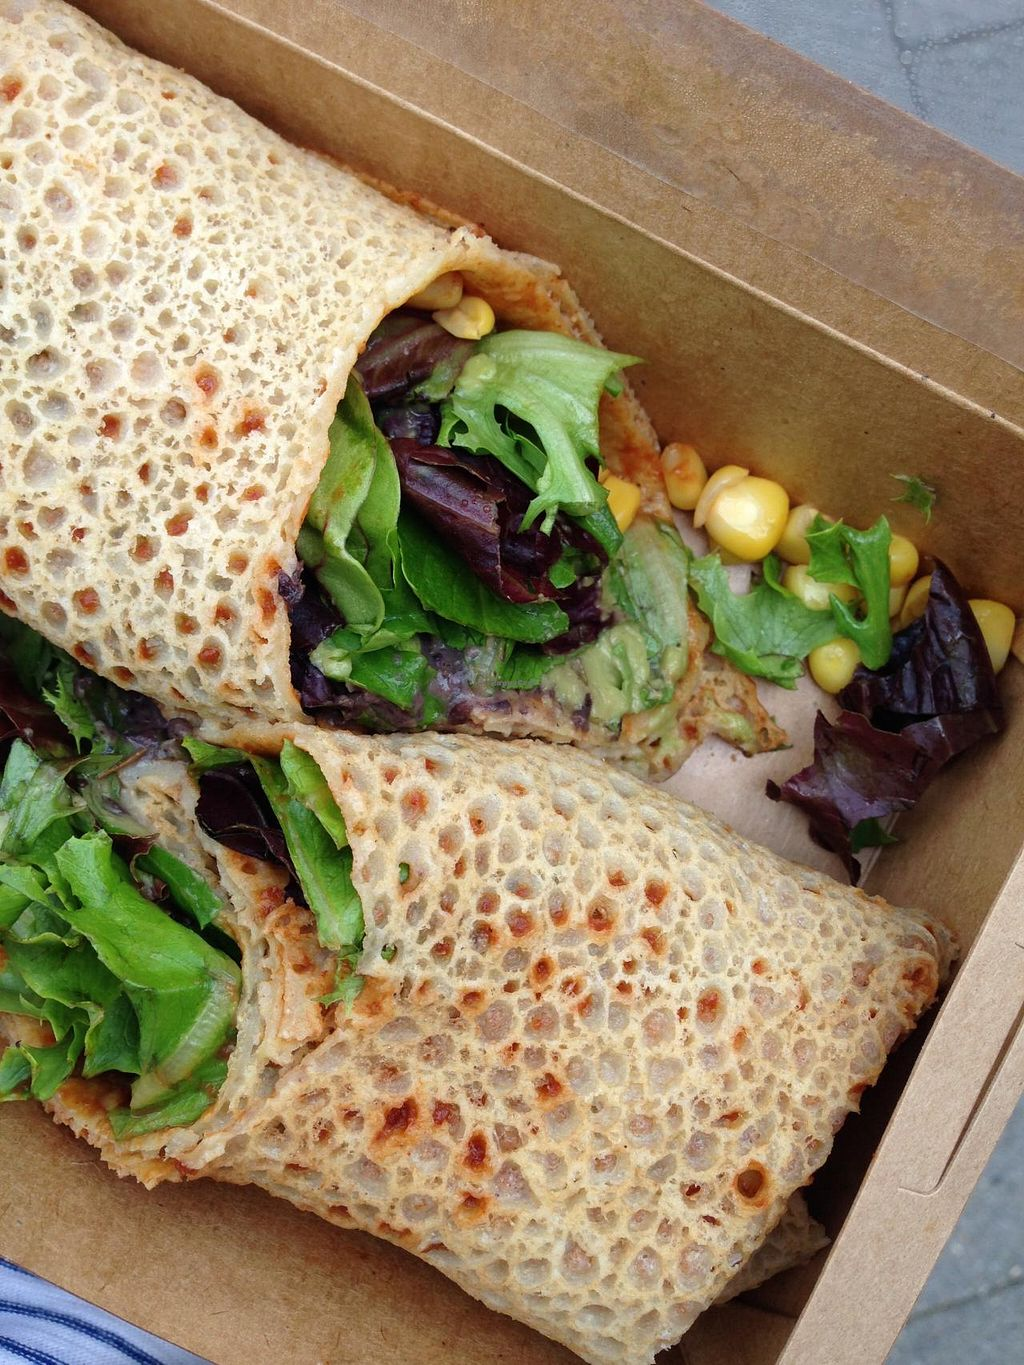 """Photo of CLOSED: VIDA  by <a href=""""/members/profile/veganxsophie"""">veganxsophie</a> <br/>vegan and gluten free S.Gonzales wrap <br/> July 9, 2015  - <a href='/contact/abuse/image/59025/108680'>Report</a>"""